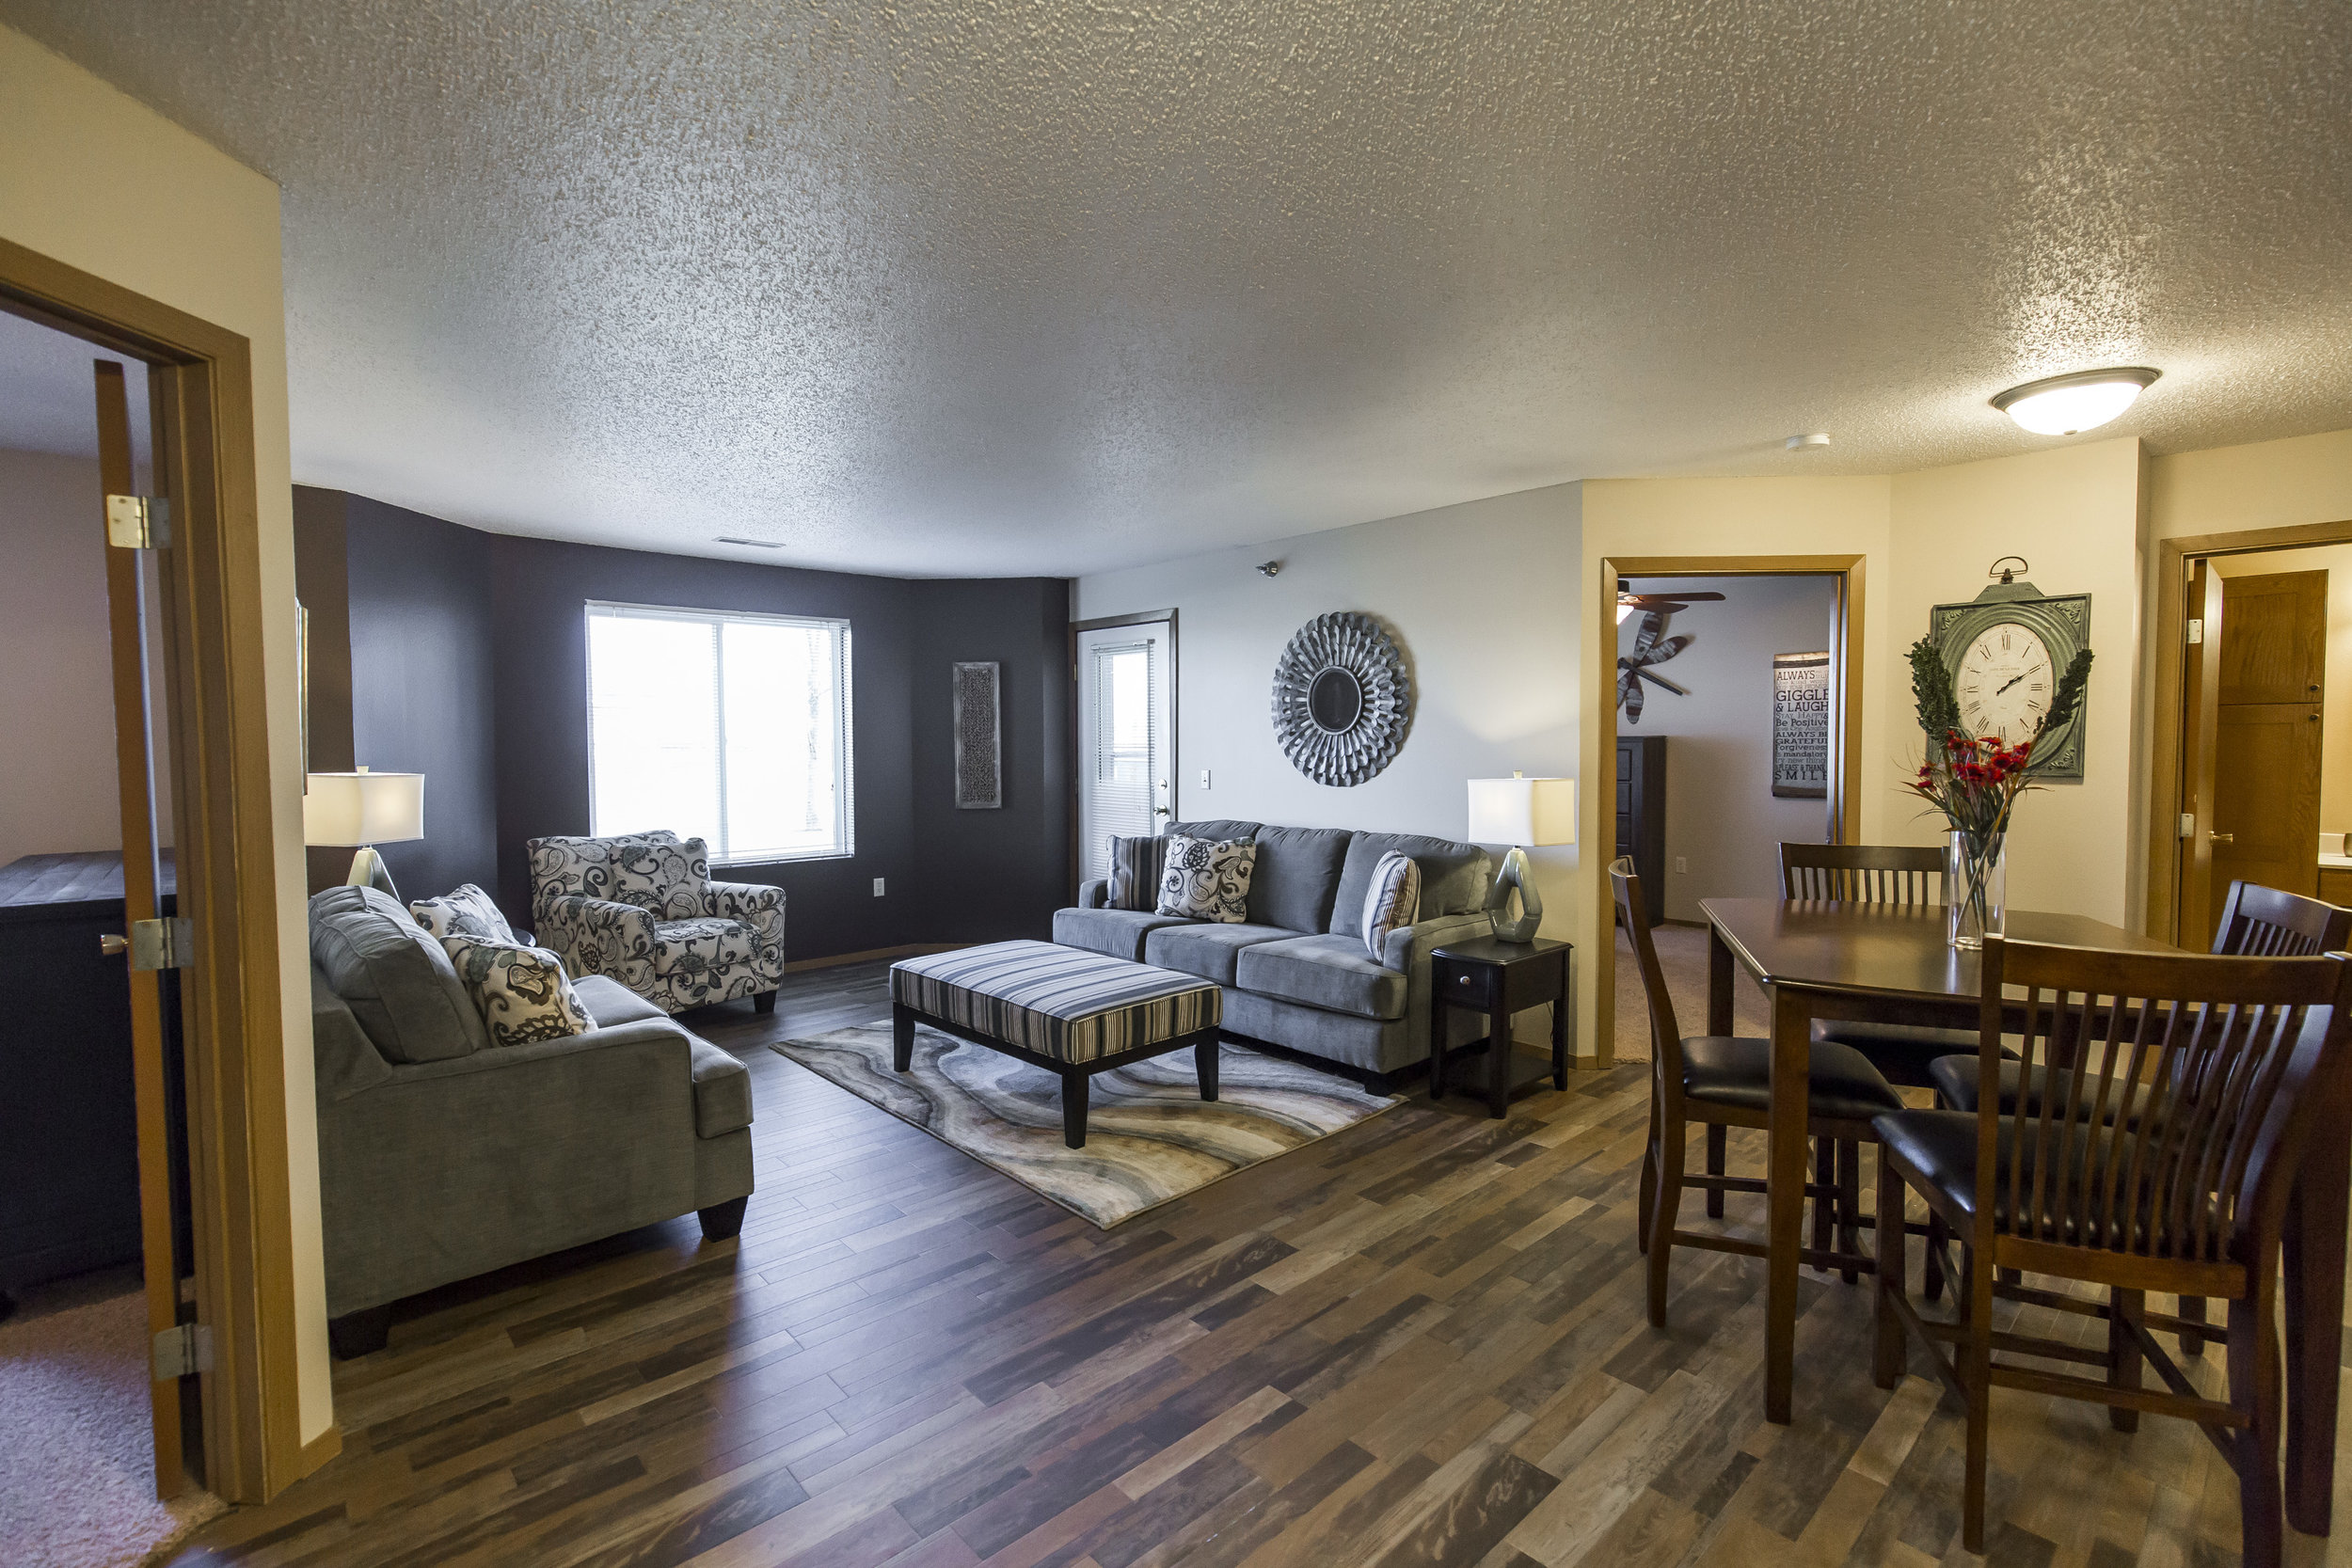 Our open floor plans with natural light are inviting and cozy